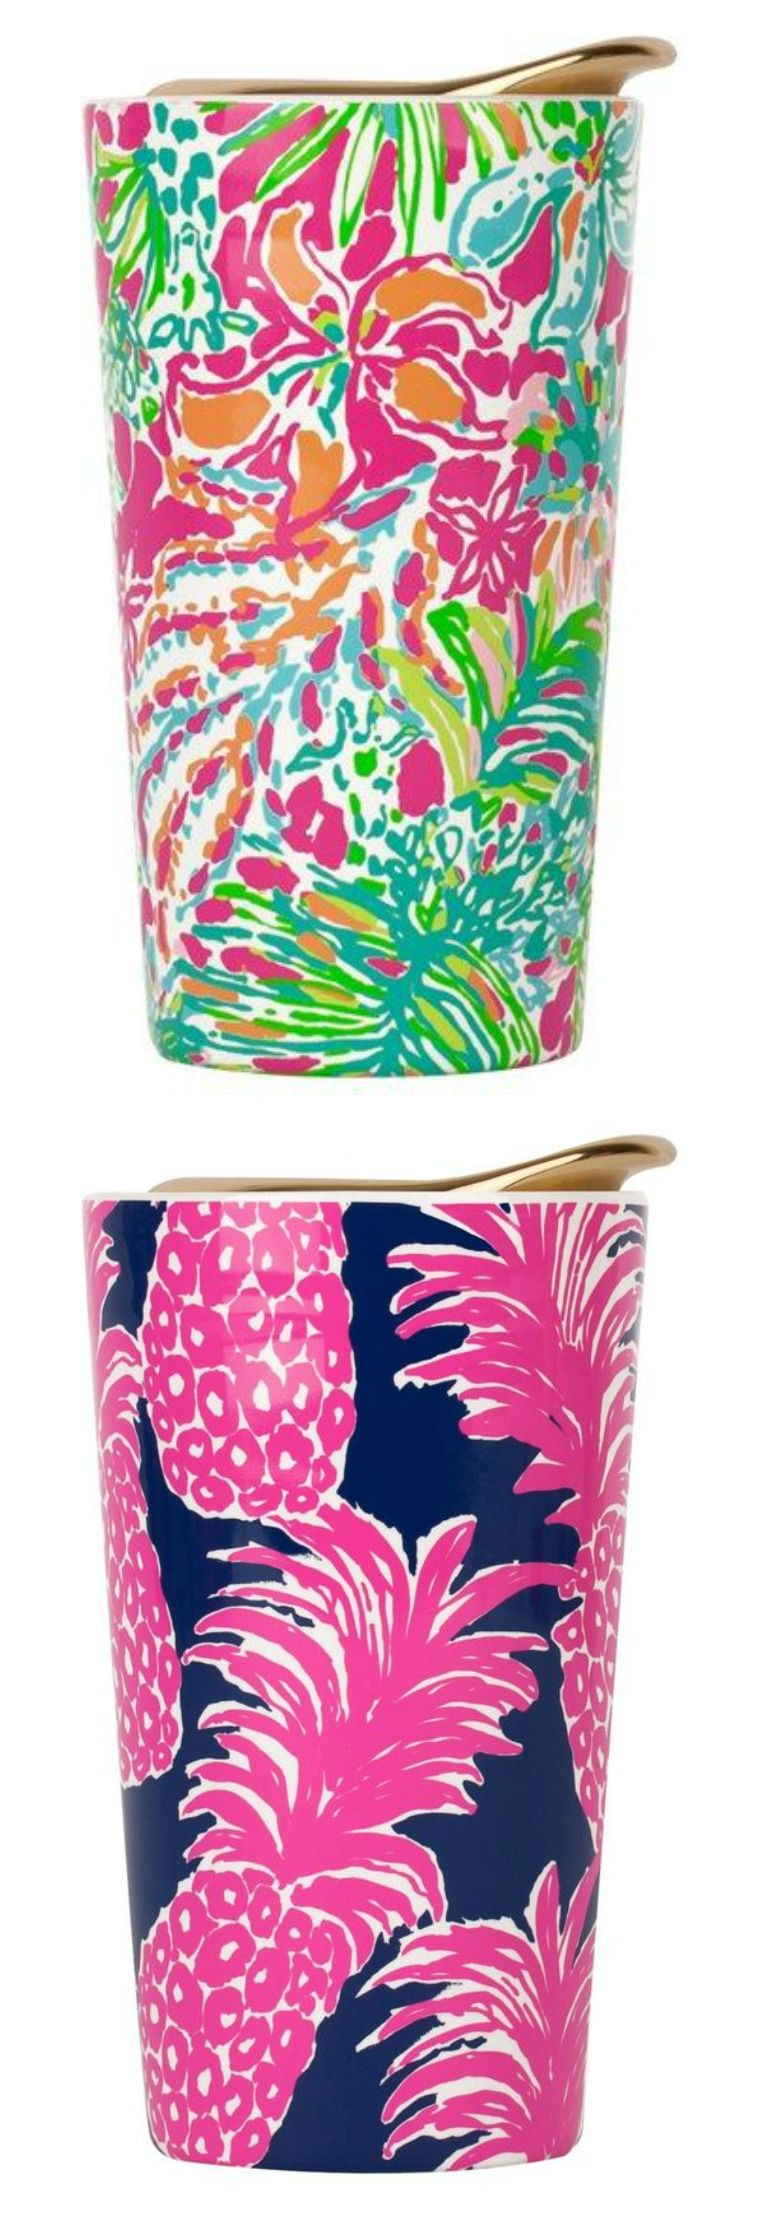 Fun and colorful Lilly Pulitzer travel mugs. Pretty and perfect for carrying your fave drink while on the go!